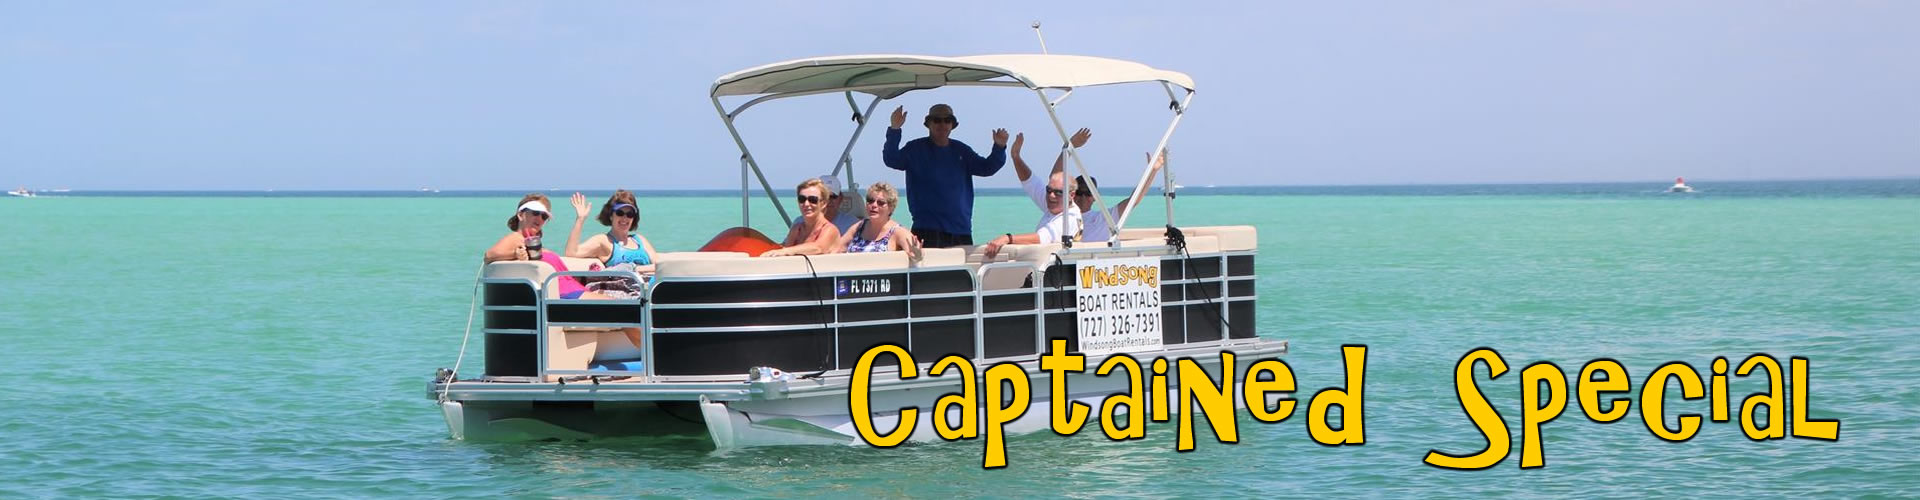 Captained Boat Rates, Tampa